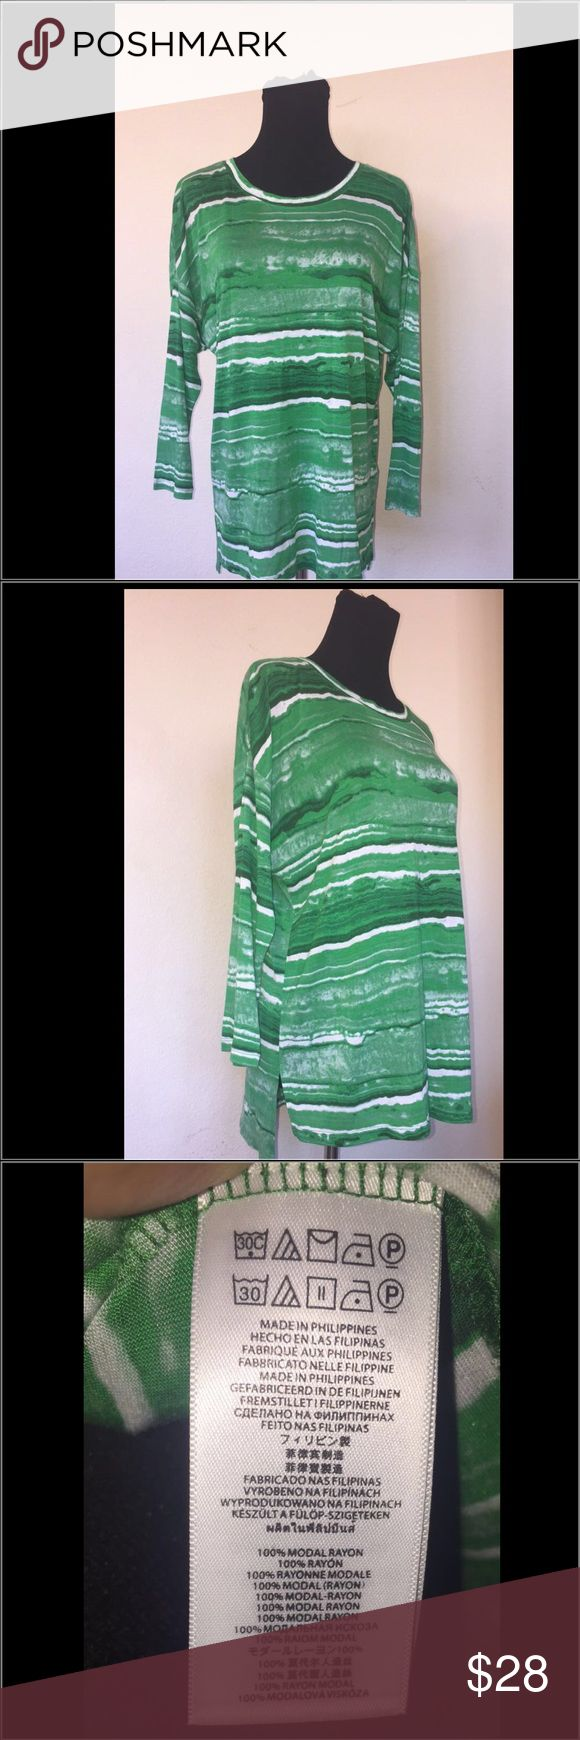 Michael Kors woman's green shirt In mint condition. Has been used twice and put up since then. Michael Kors Tops Blouses